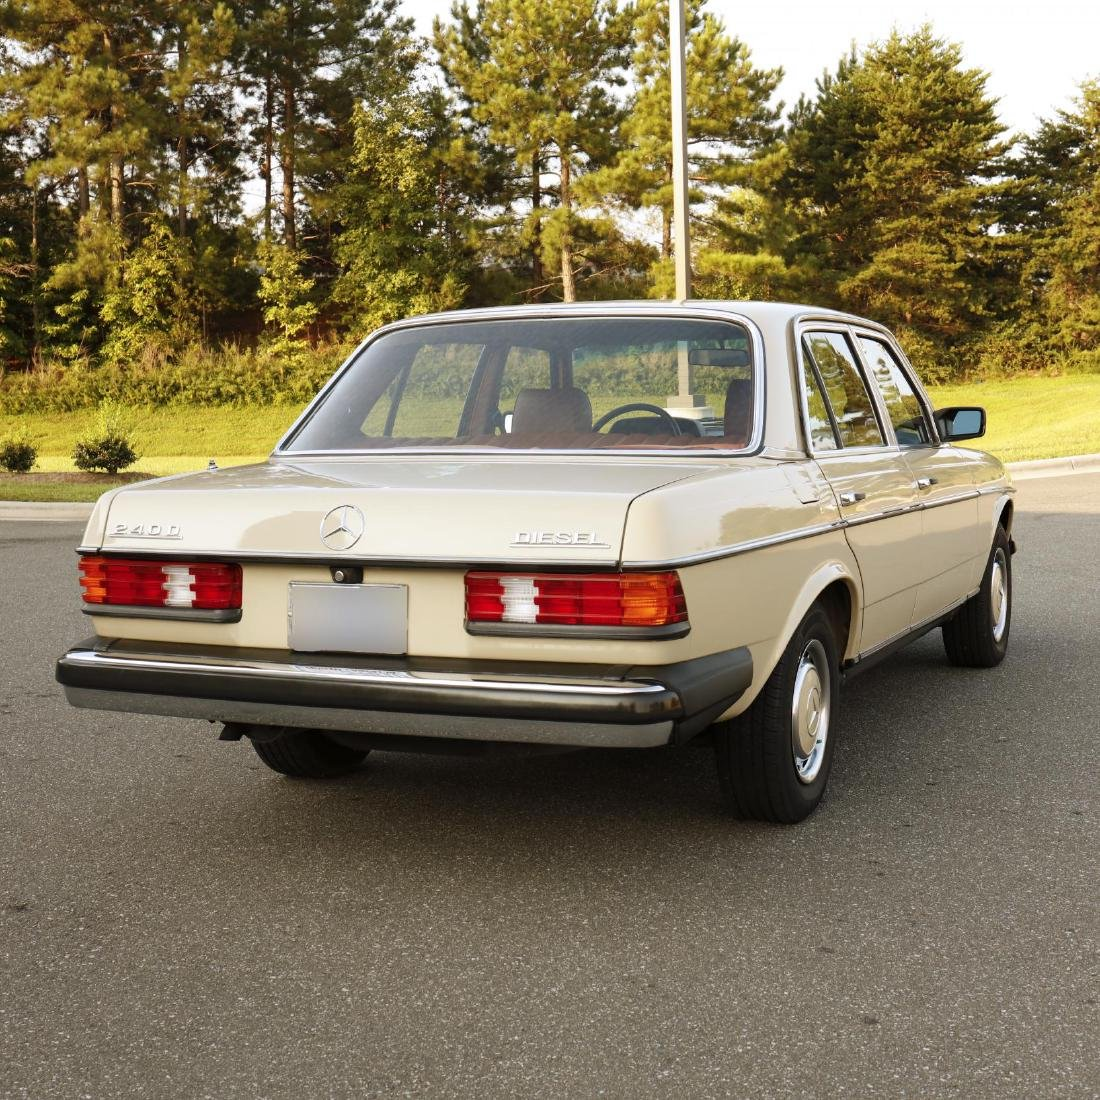 One-Owner 1981 Mercedes Benz 240D - 5